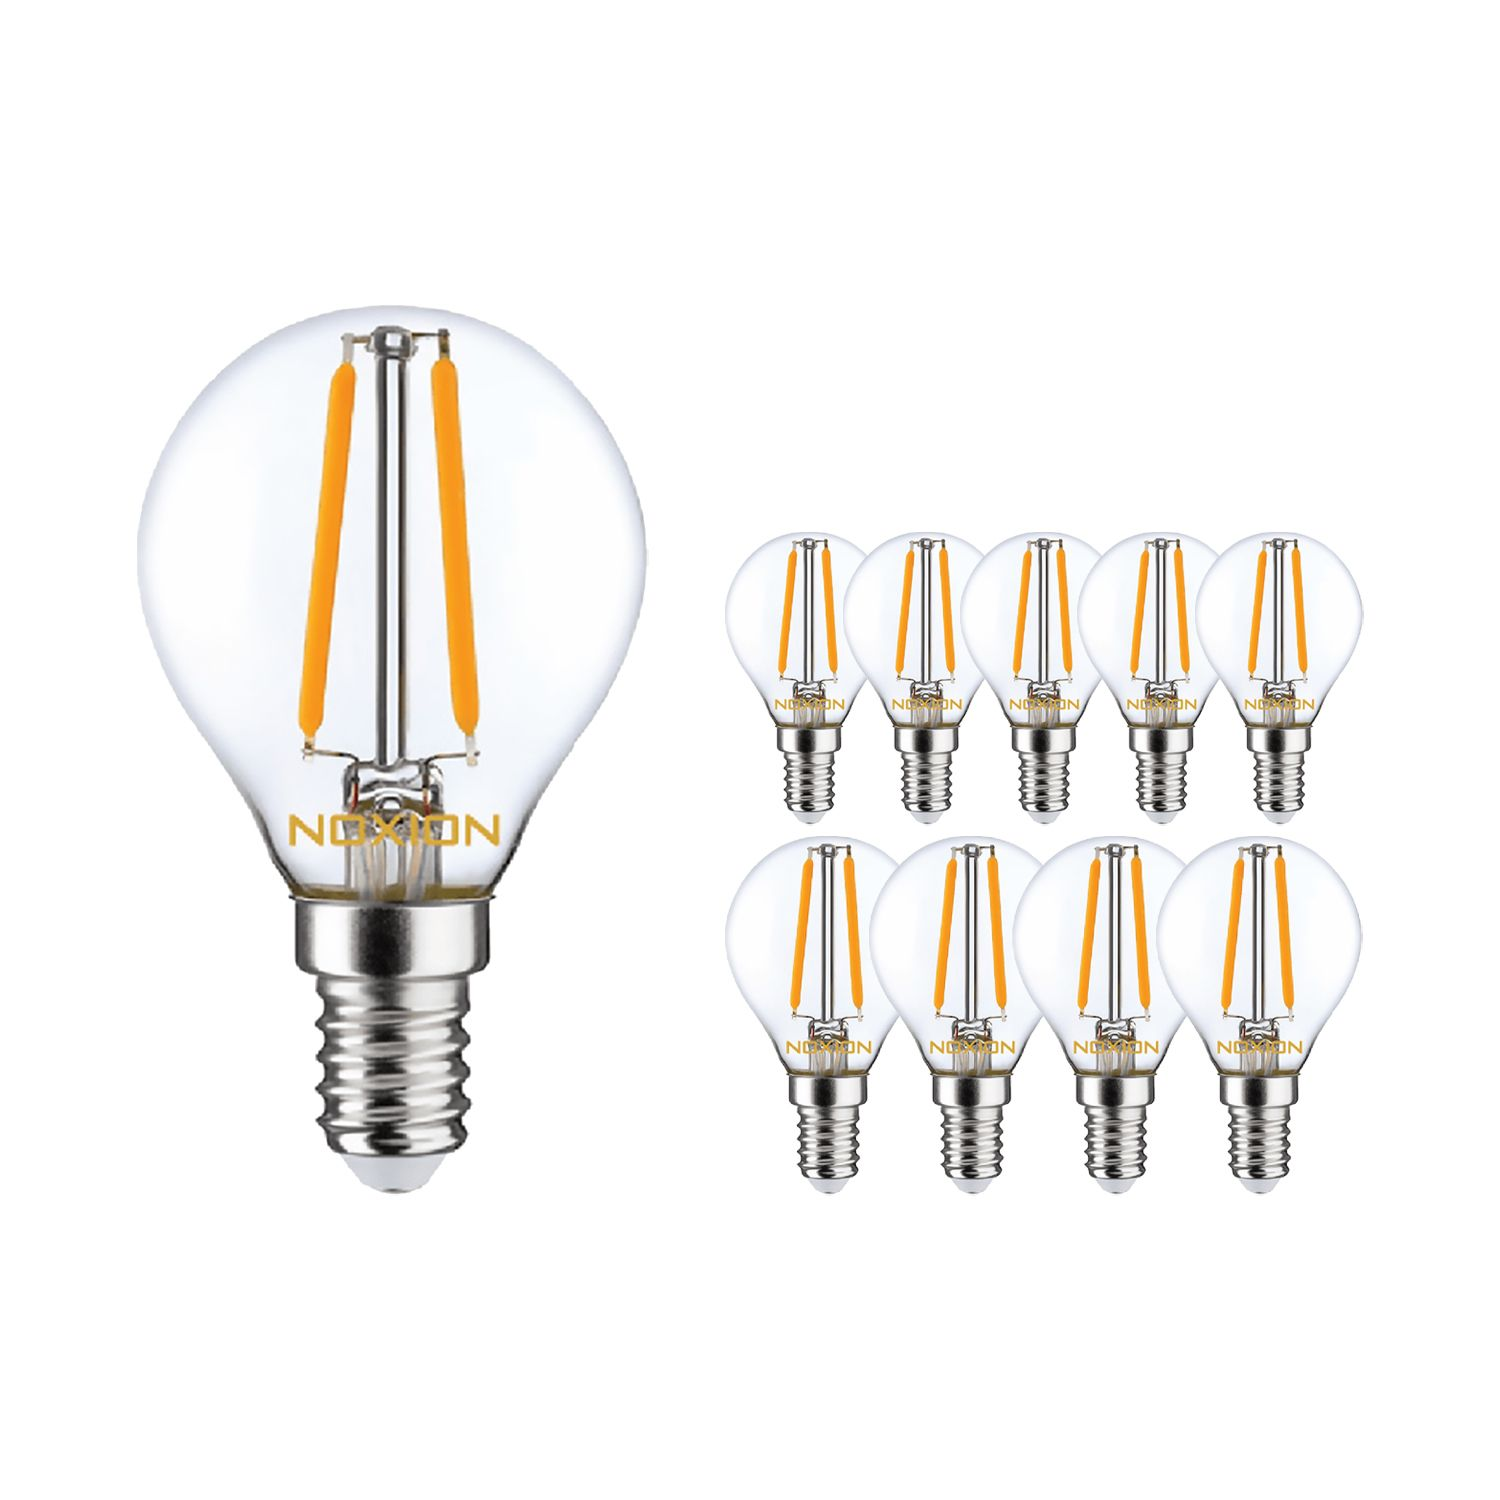 Lot 10x Noxion Lucent Filament LED Lustre 4.5W 827 P45 E14 Claire | Dimmable - Blanc Très Chaud - Substitut 40W